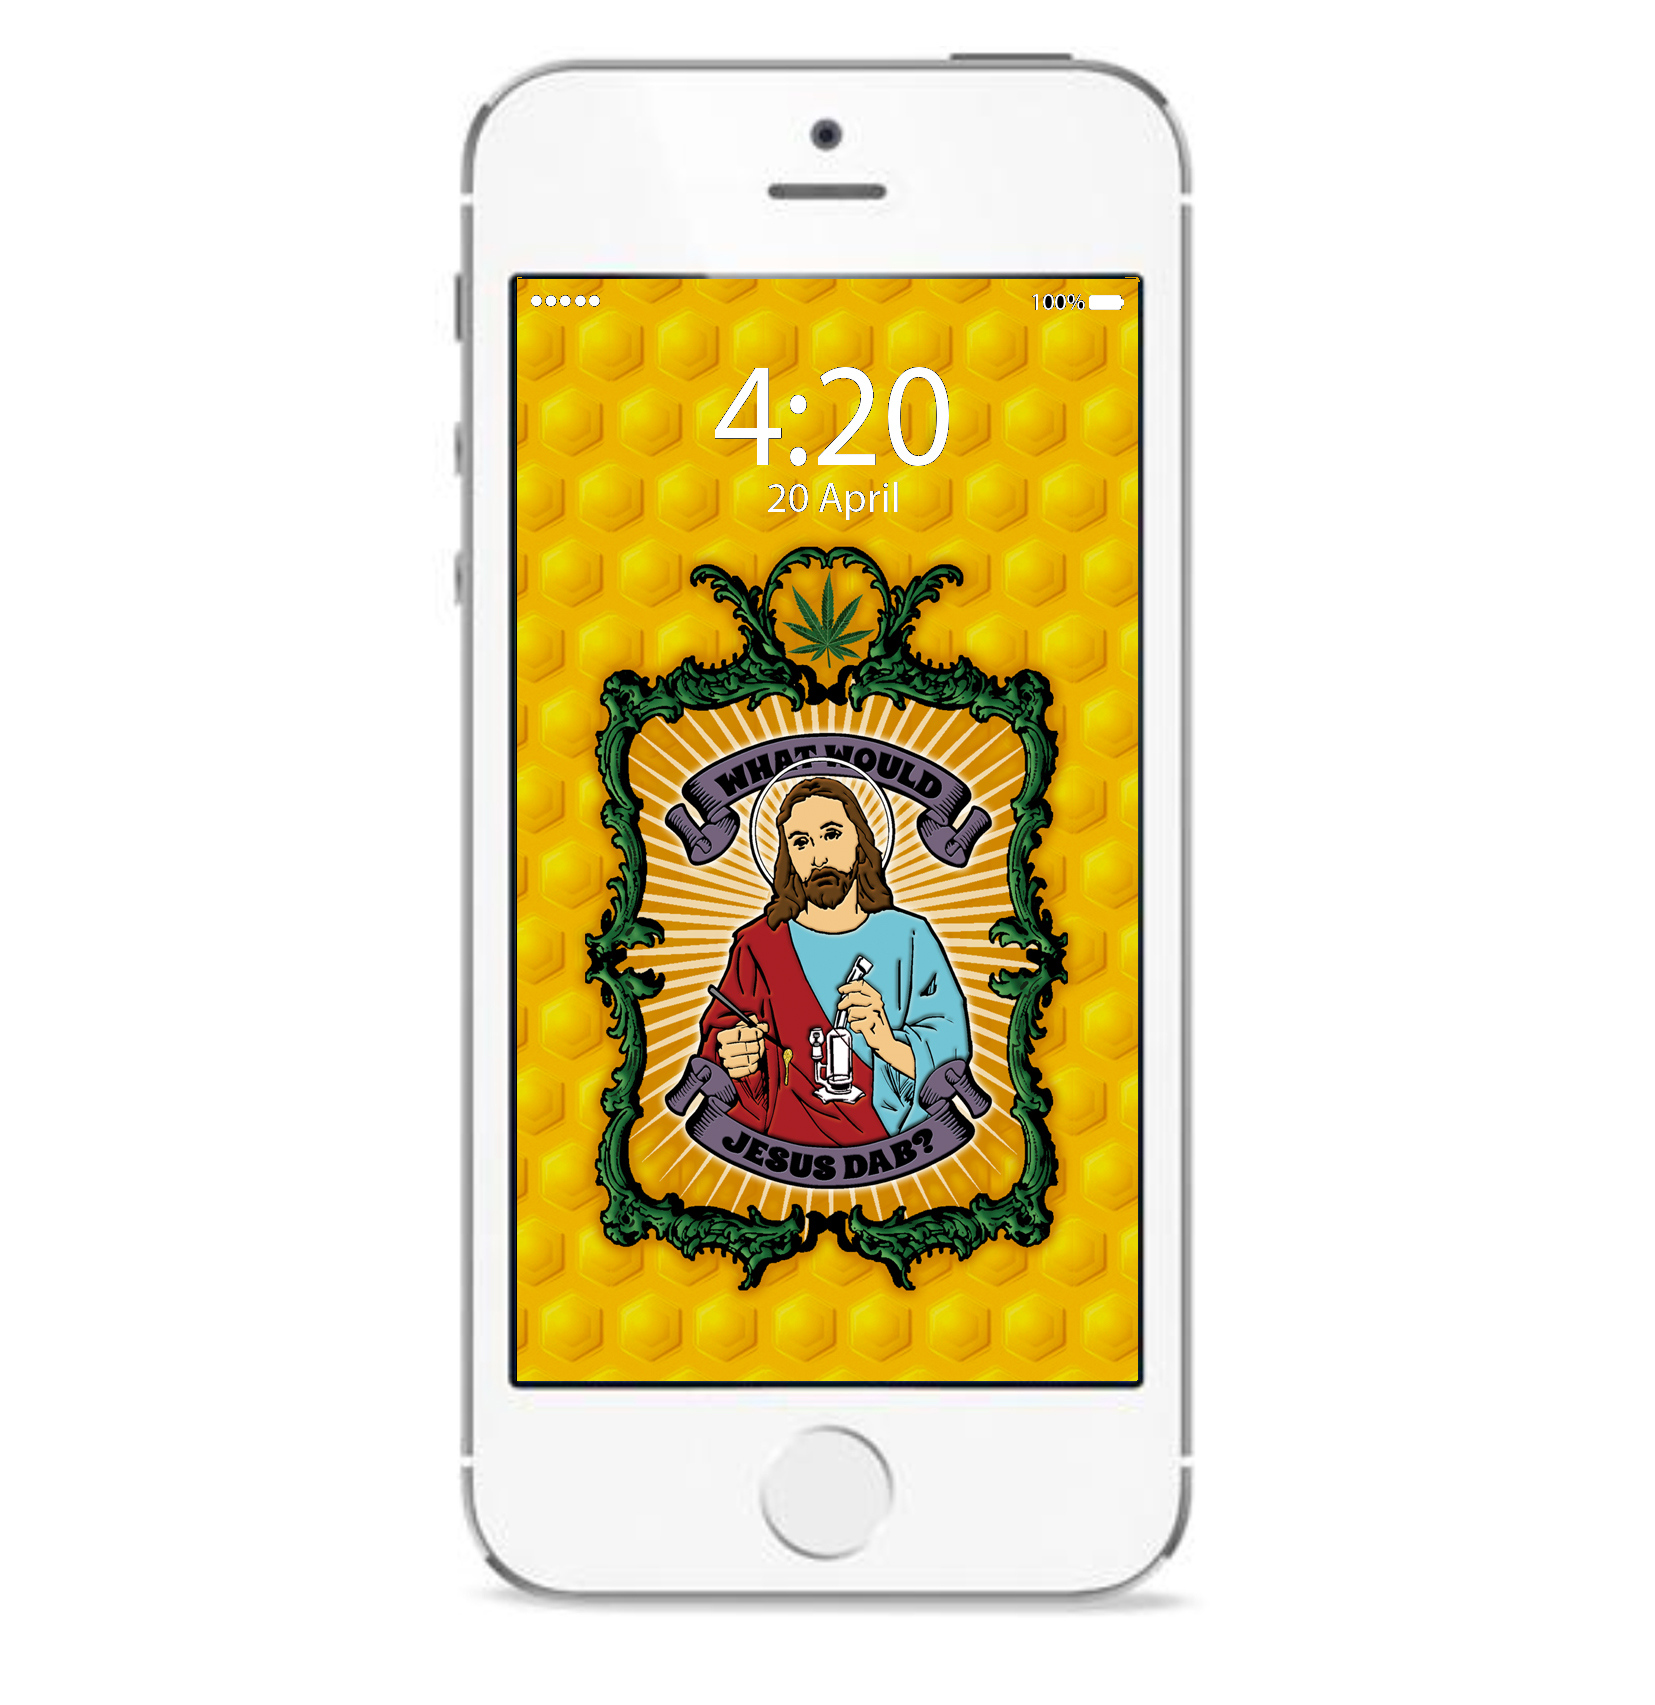 just get high_iphone_wwjd_mockup a